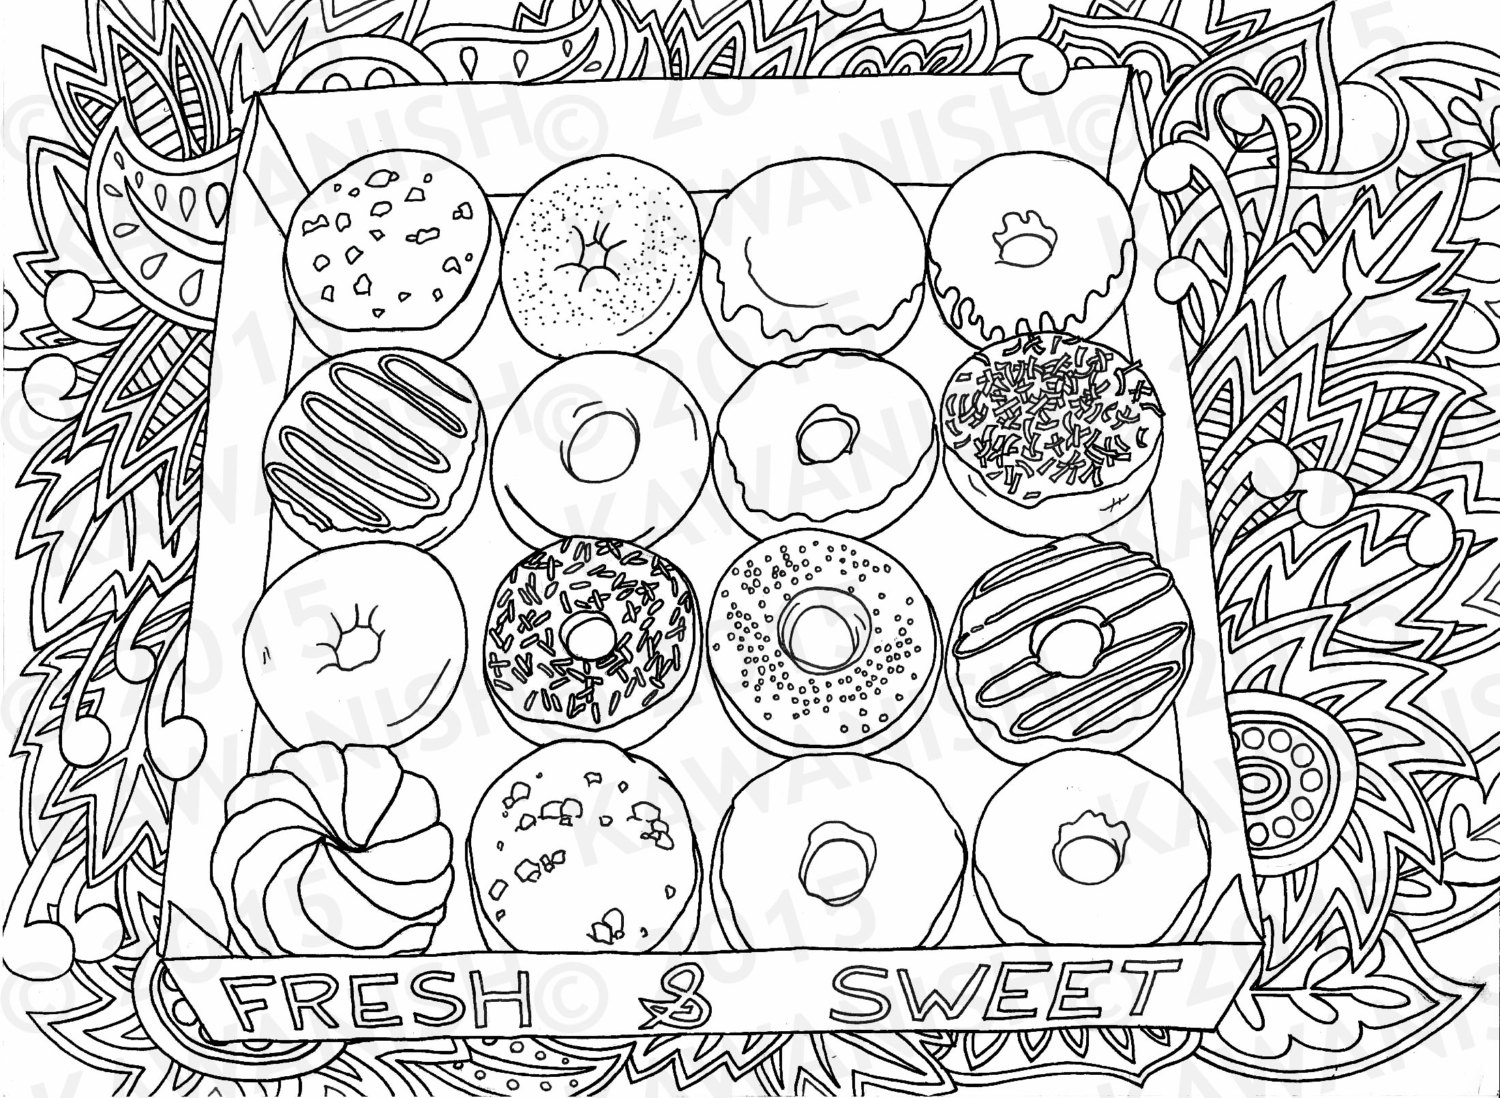 Variety Decorated Donuts Colouring Pages - Picolour